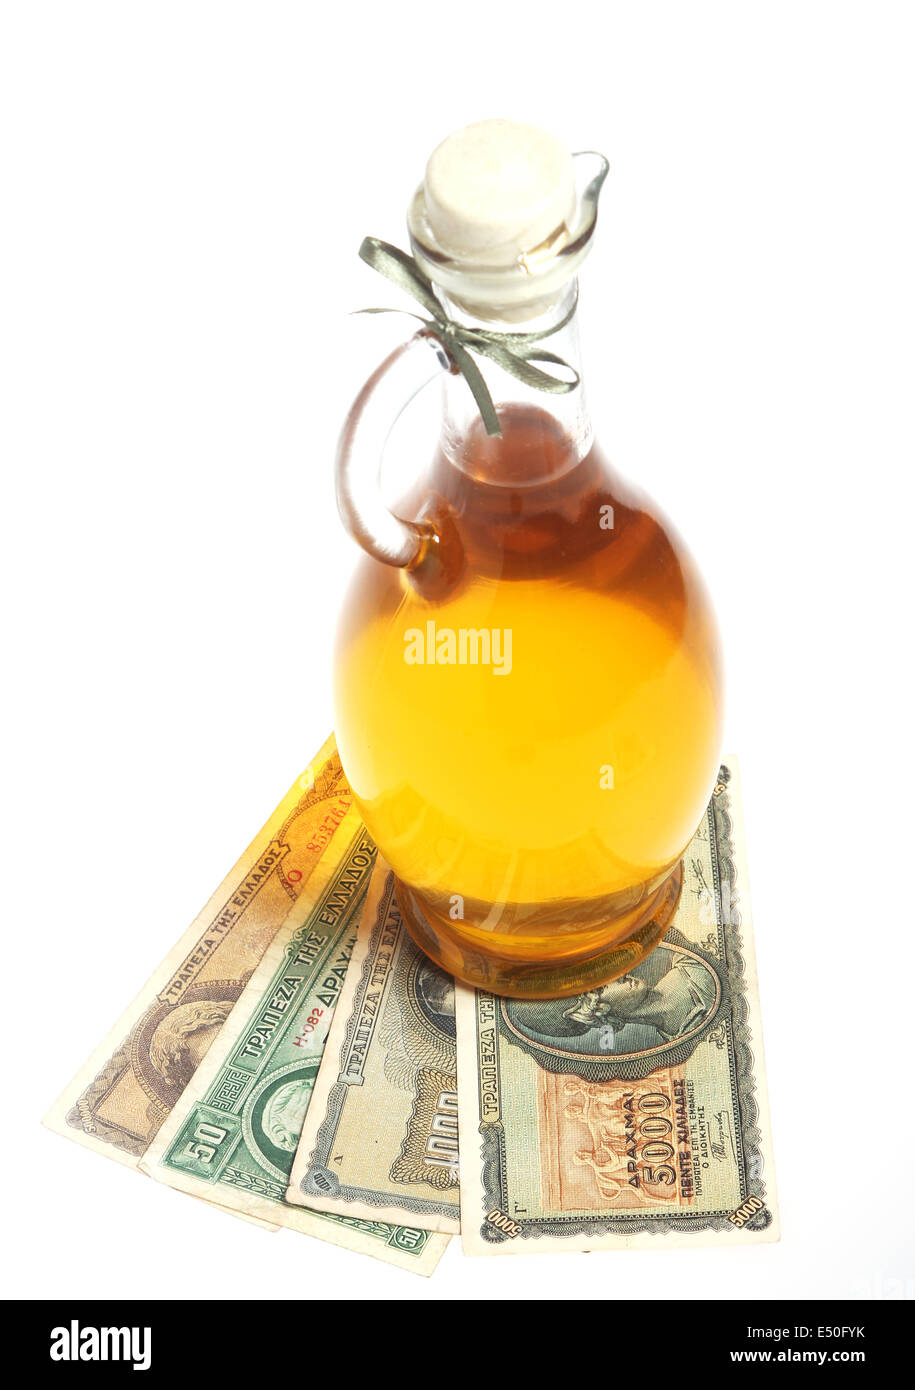 Oil bottle and Greece drachmas - Stock Image